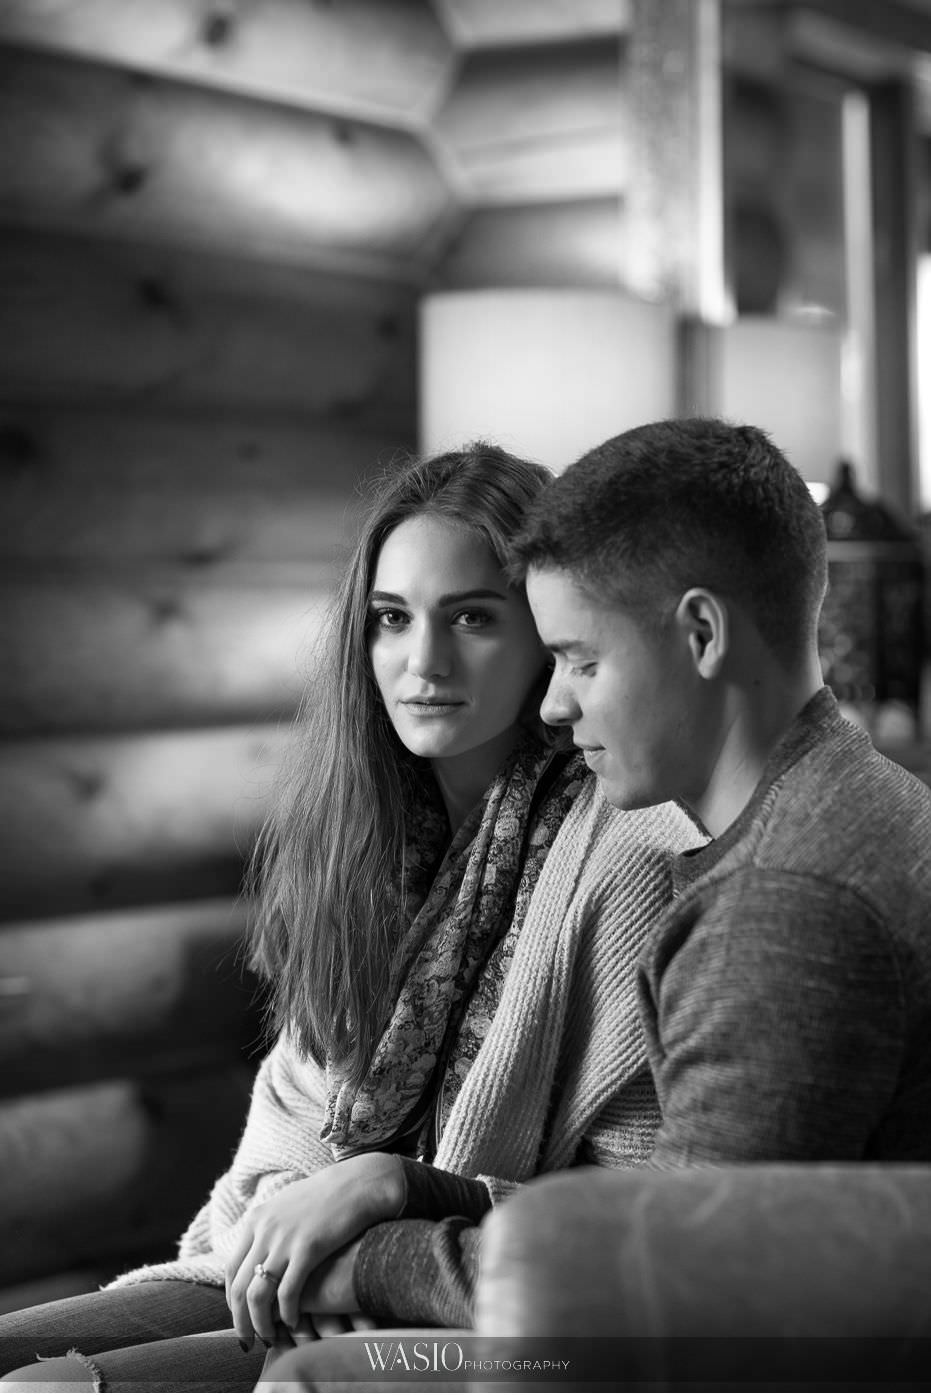 fall-engagement-pictures-black-white-photo-journailsm-beautiful-indoor-portrait-00 The Most Romantic Fall Engagement Pictures - Julia and Luis